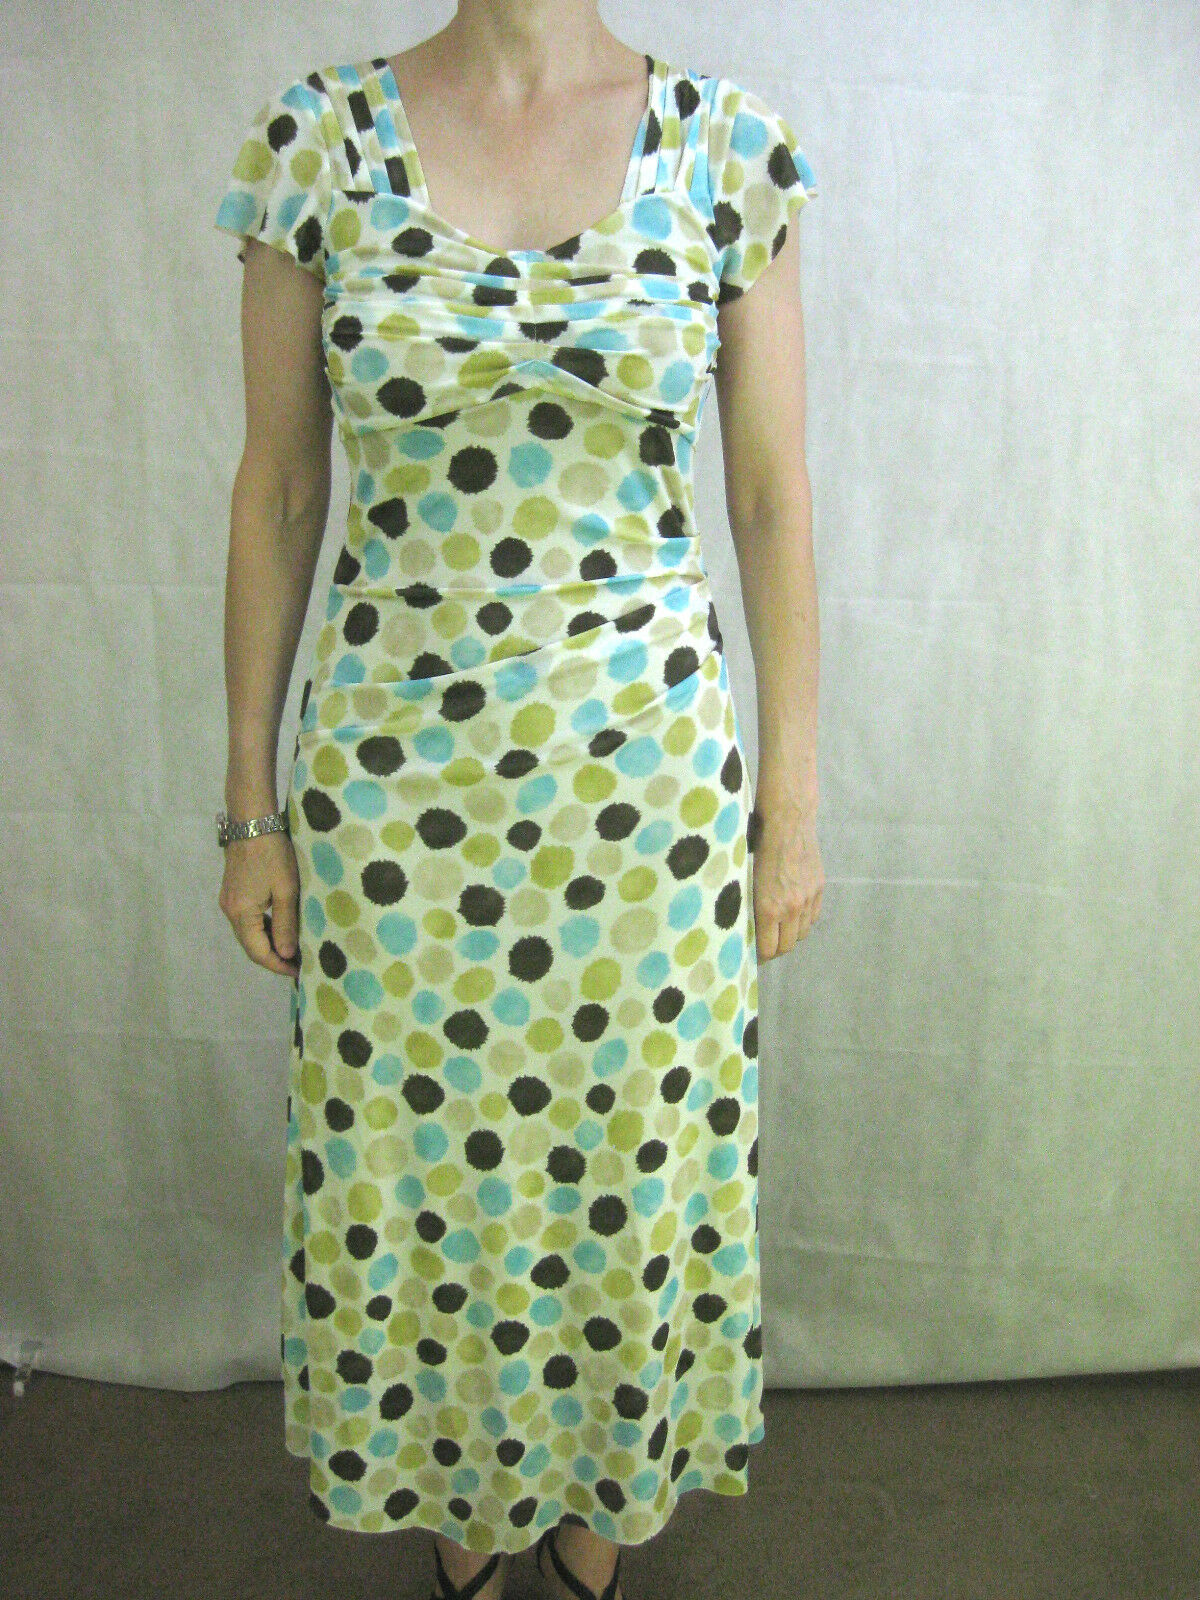 Von Troska Size S White Tea Length Dress